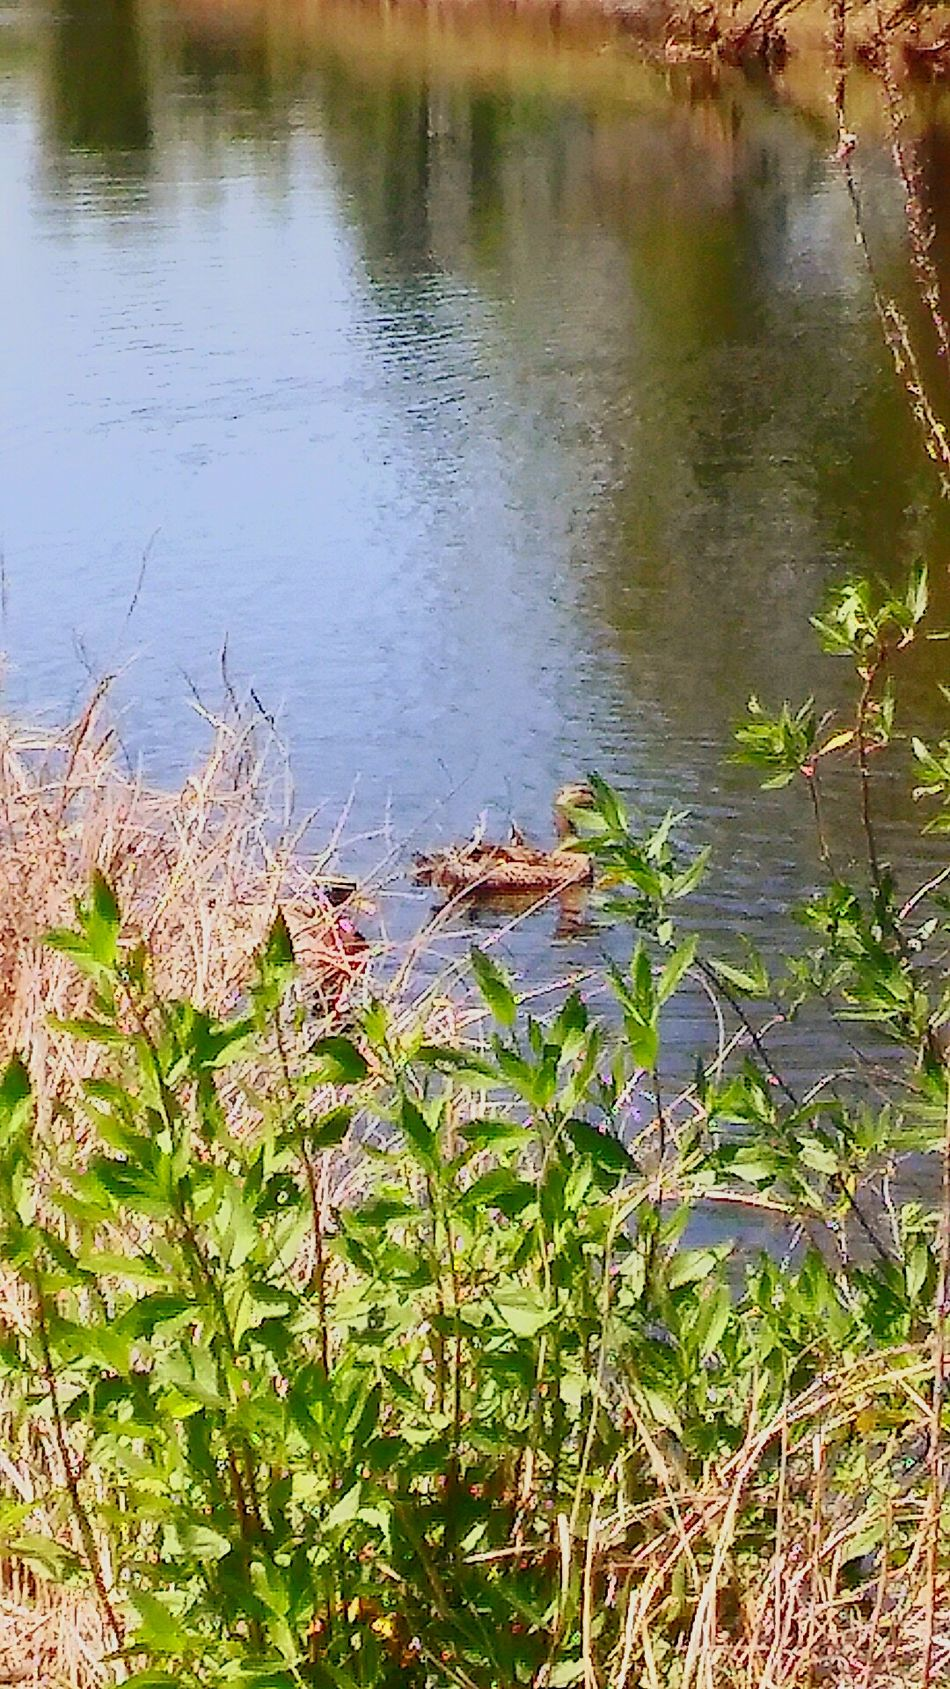 MamaMallard&BabyDuckling💕 Water Canals And Waterways Outdoors Reflection Grass Nature Day No People Growth Beauty In Nature Landscape Reflections Reflected In The Glassy Stillness Of The Water EyeEmBestShot's Tranquil Scene Eyeemnaturelover Reflection_collection Animals In The Wild Animal Themes Tranquility Beauty In Nature MallardDuck's💗💗 Fulllength Backgrounds